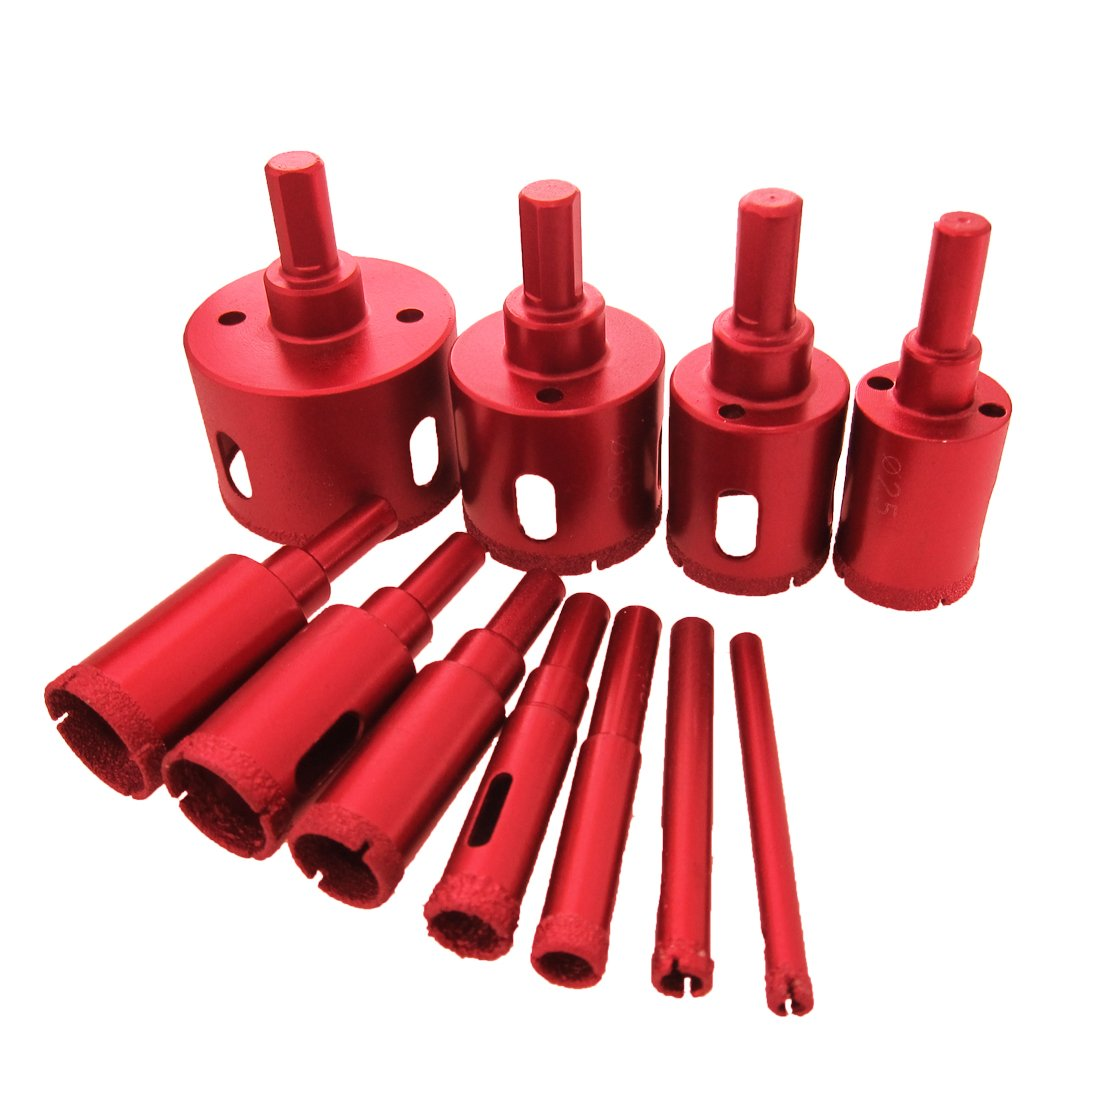 Meccion Diamond Drill Bit Kit Brazed Heavy Duty Hole Saw Set Extractor Remover Tools Hole Saws For Glass, Ceramics, Porcelain, Ceramic Tile,Stone Mandrels Saws 6/25 inch - 2 inch 11 Packs by Meccion